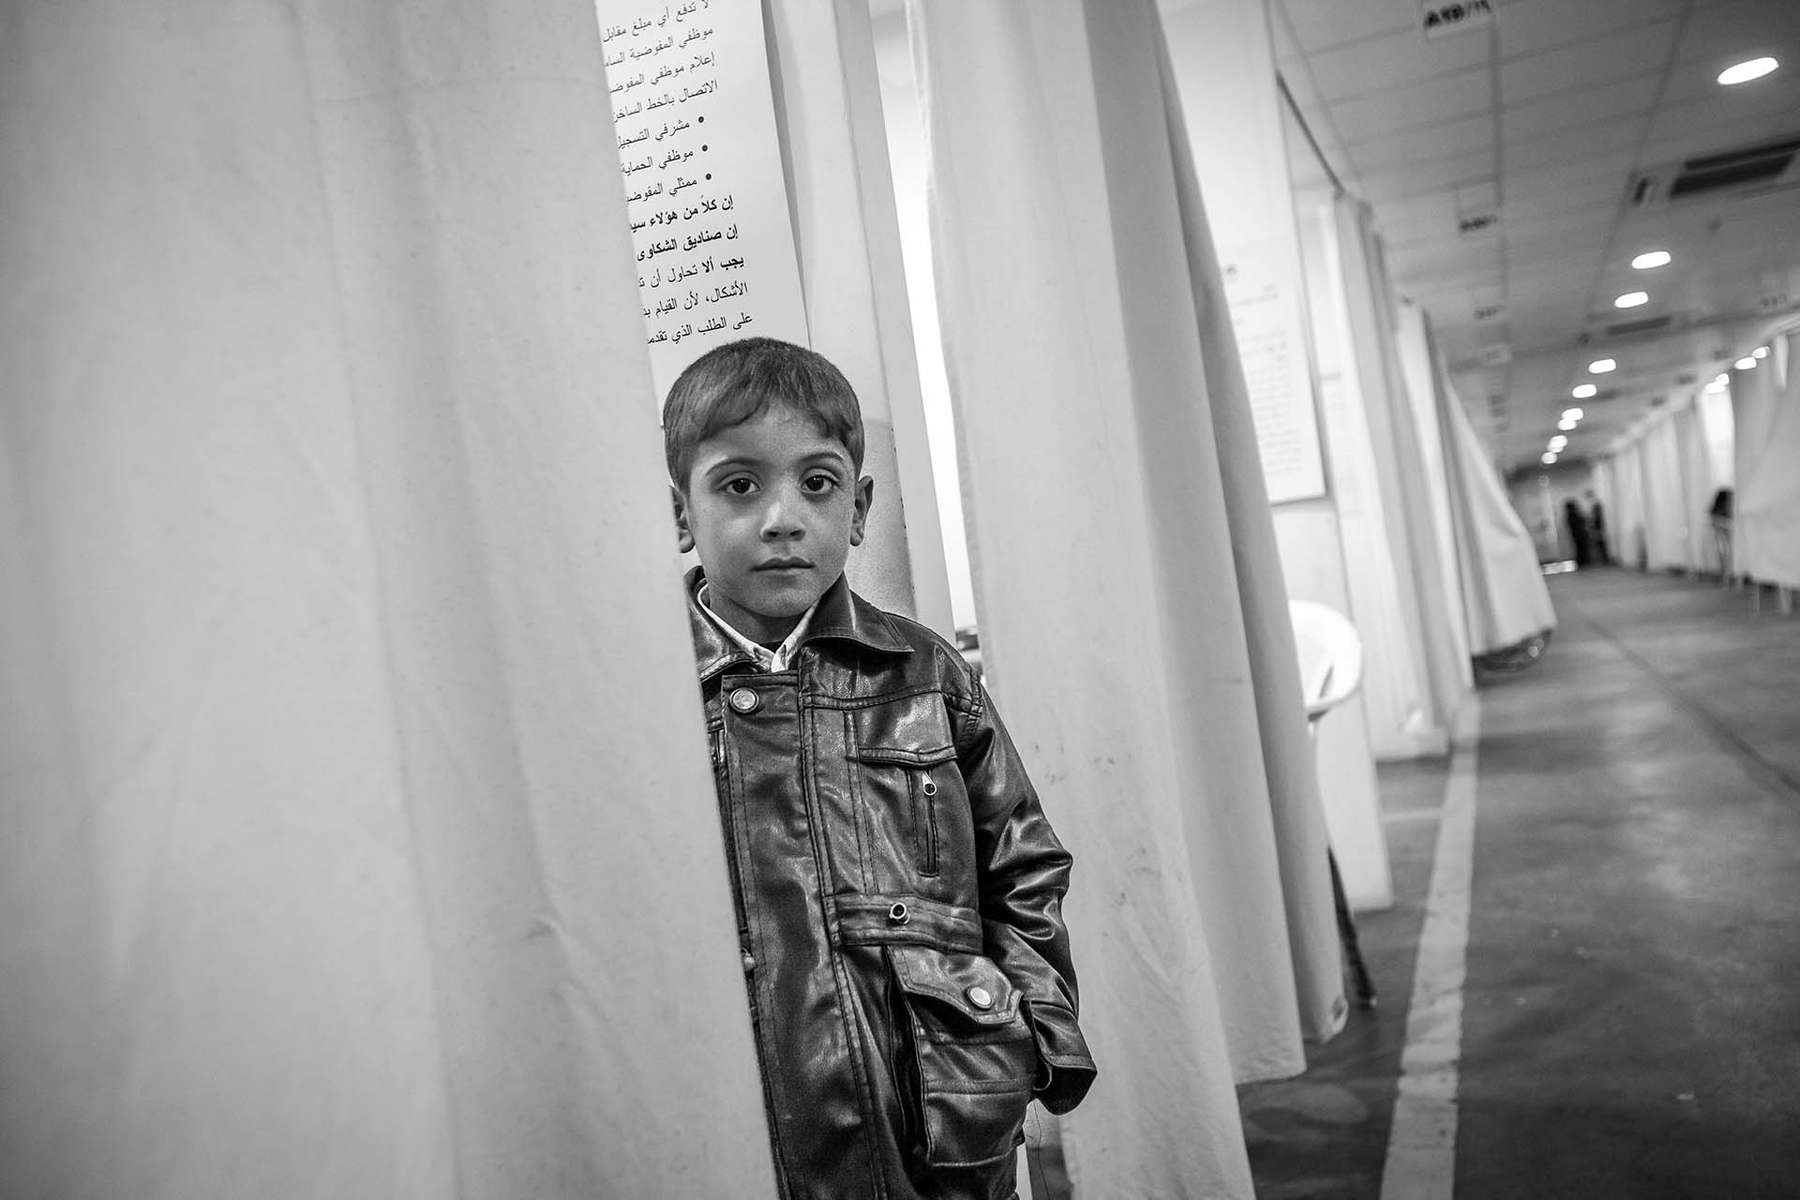 A boy waits patiently for his paretns to be interviewed at UNHCR office in Damascus.